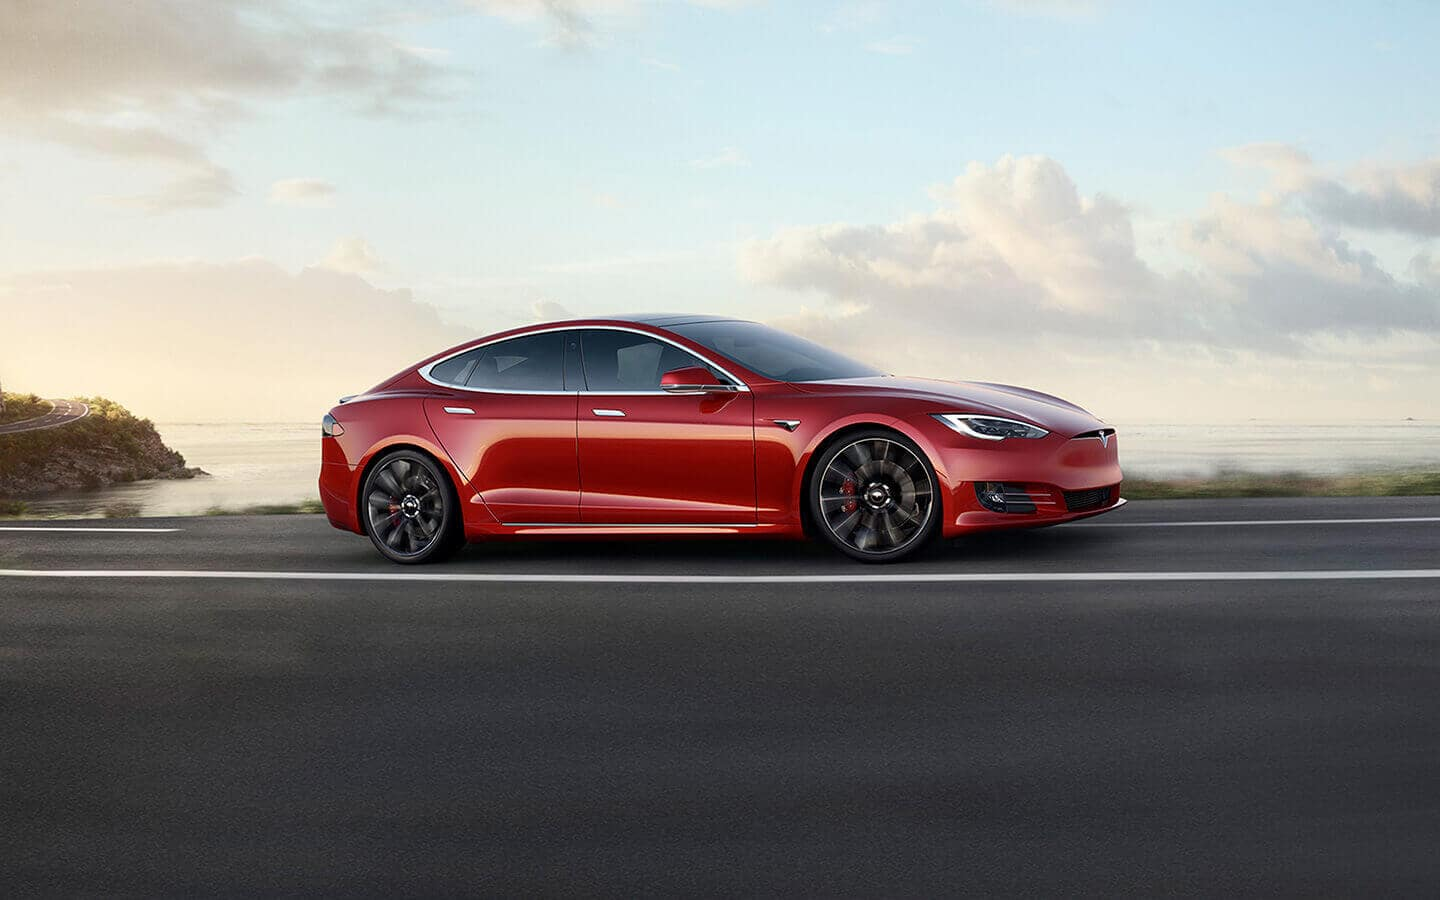 2019 Tesla Model S Exterior Side view